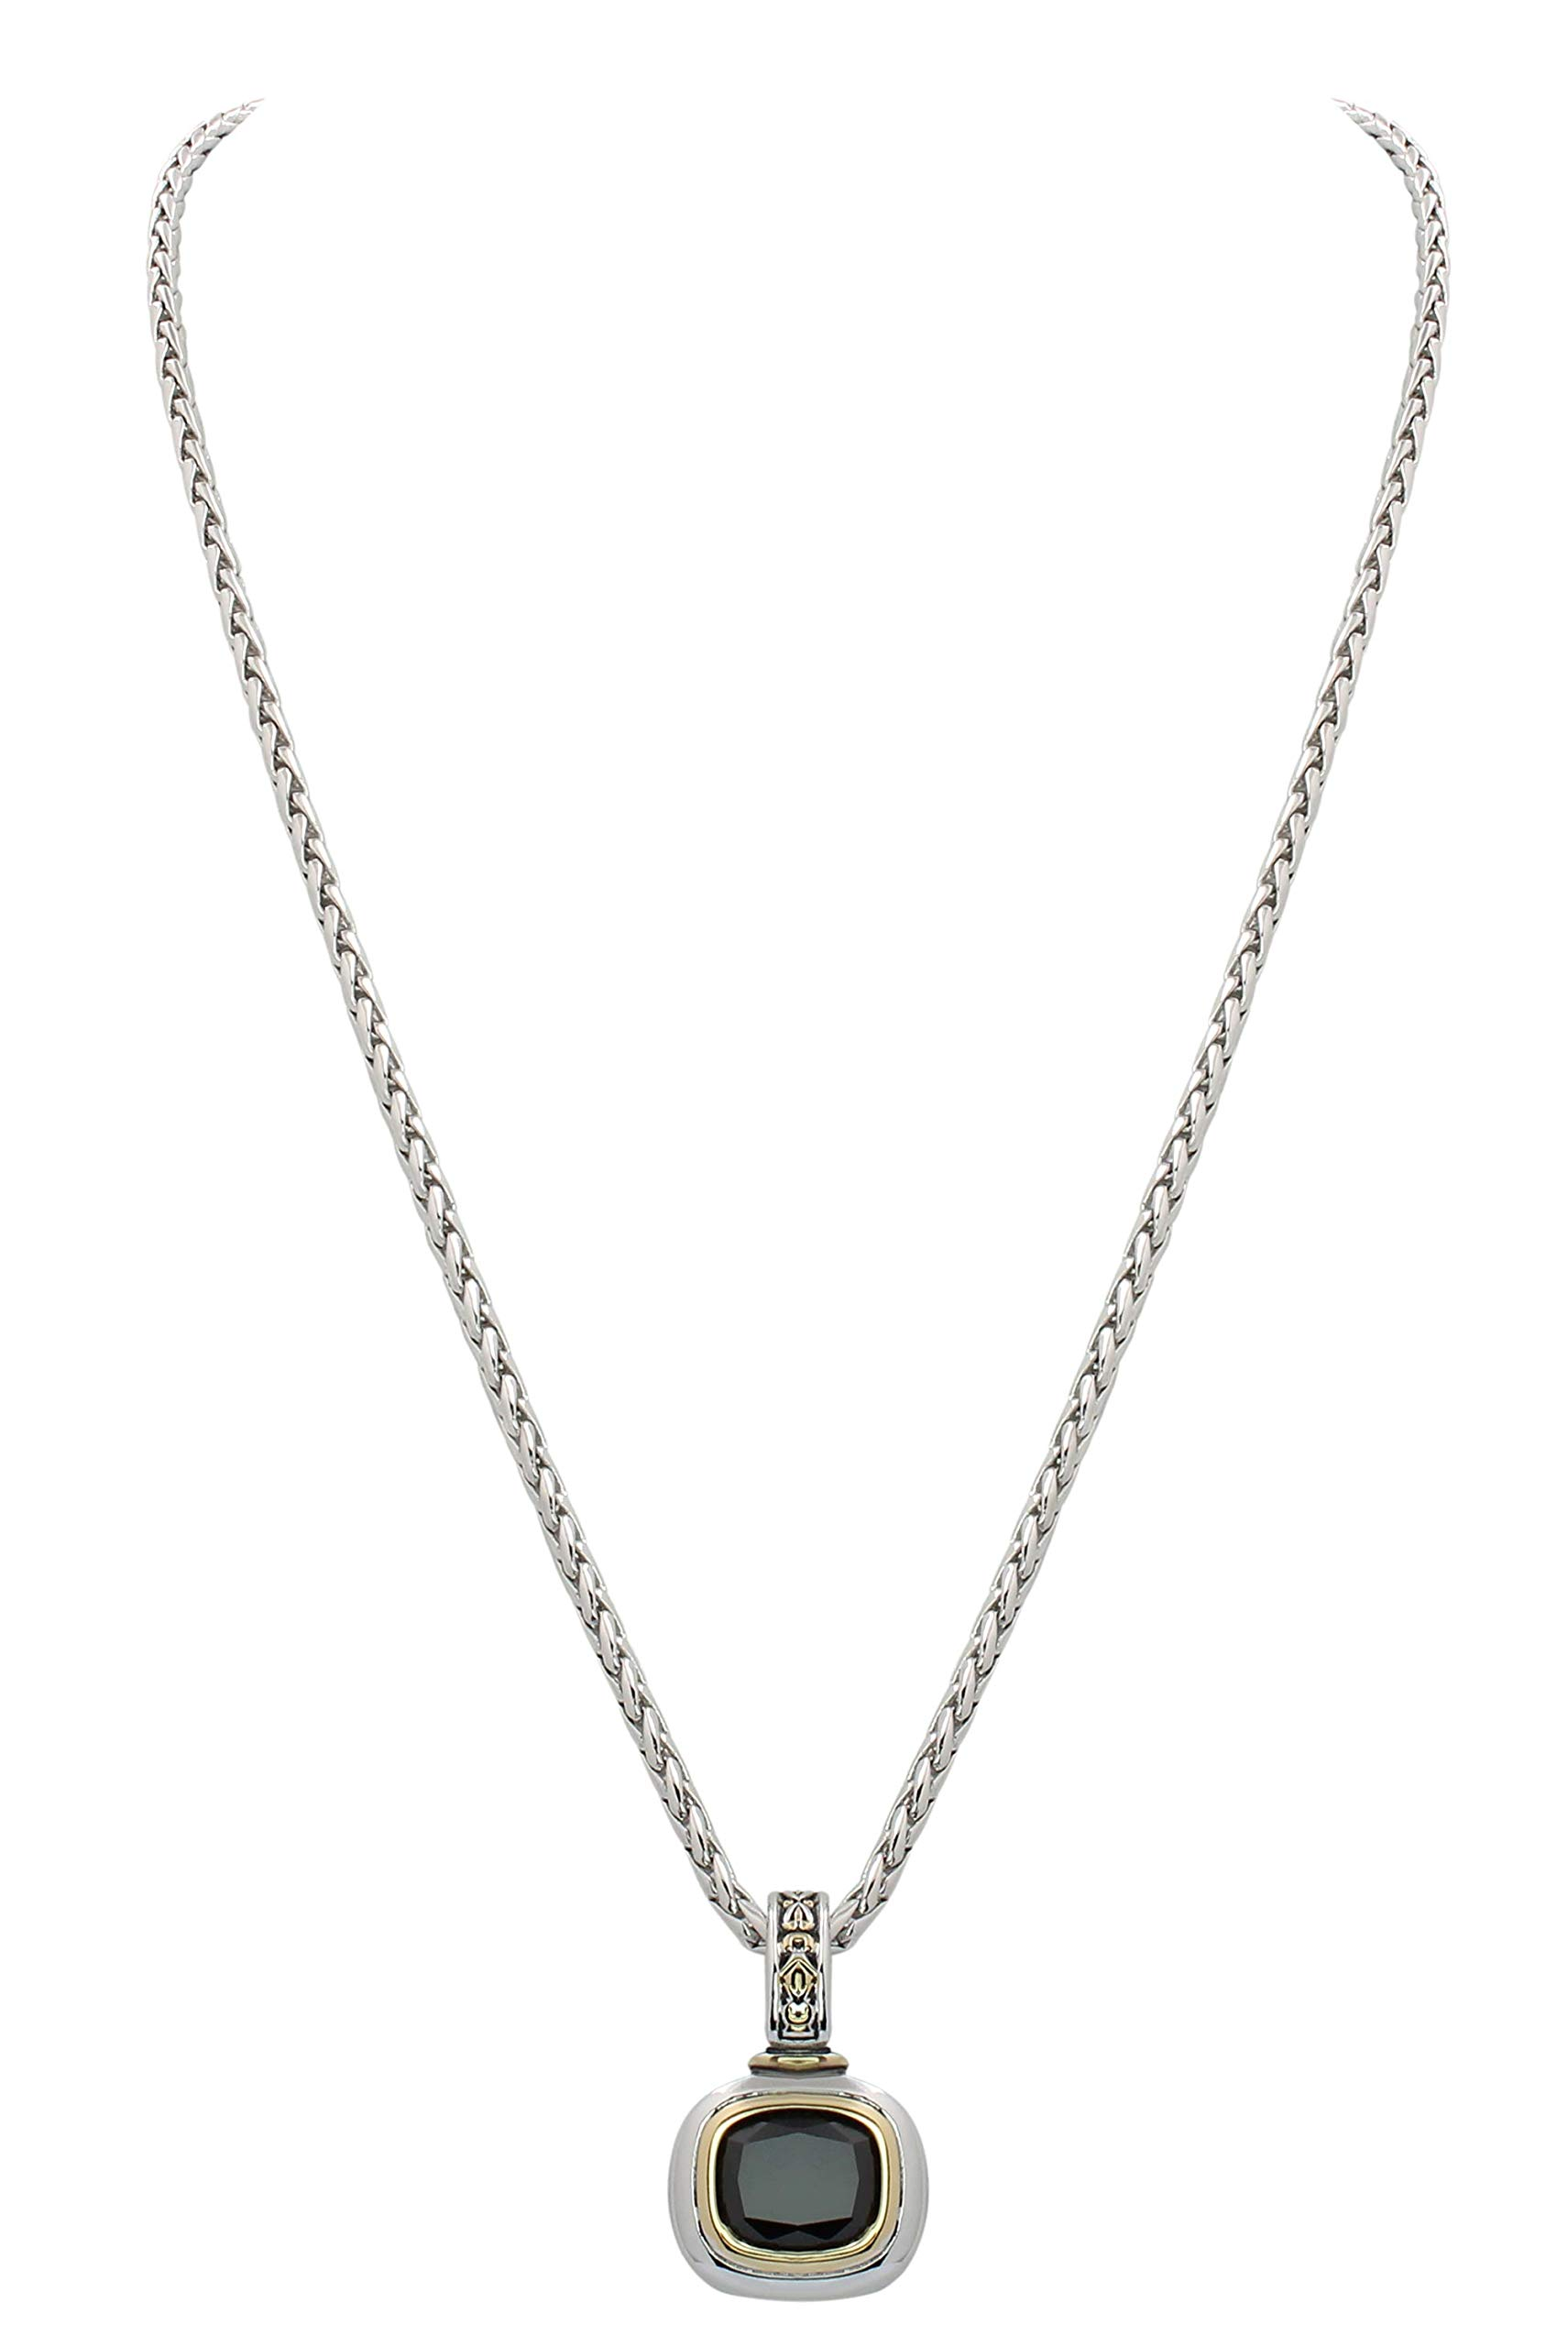 John Medeiros Black Cubic Zirconia Necklace 16'' ID Made in The USA by John Medeiros (Image #1)